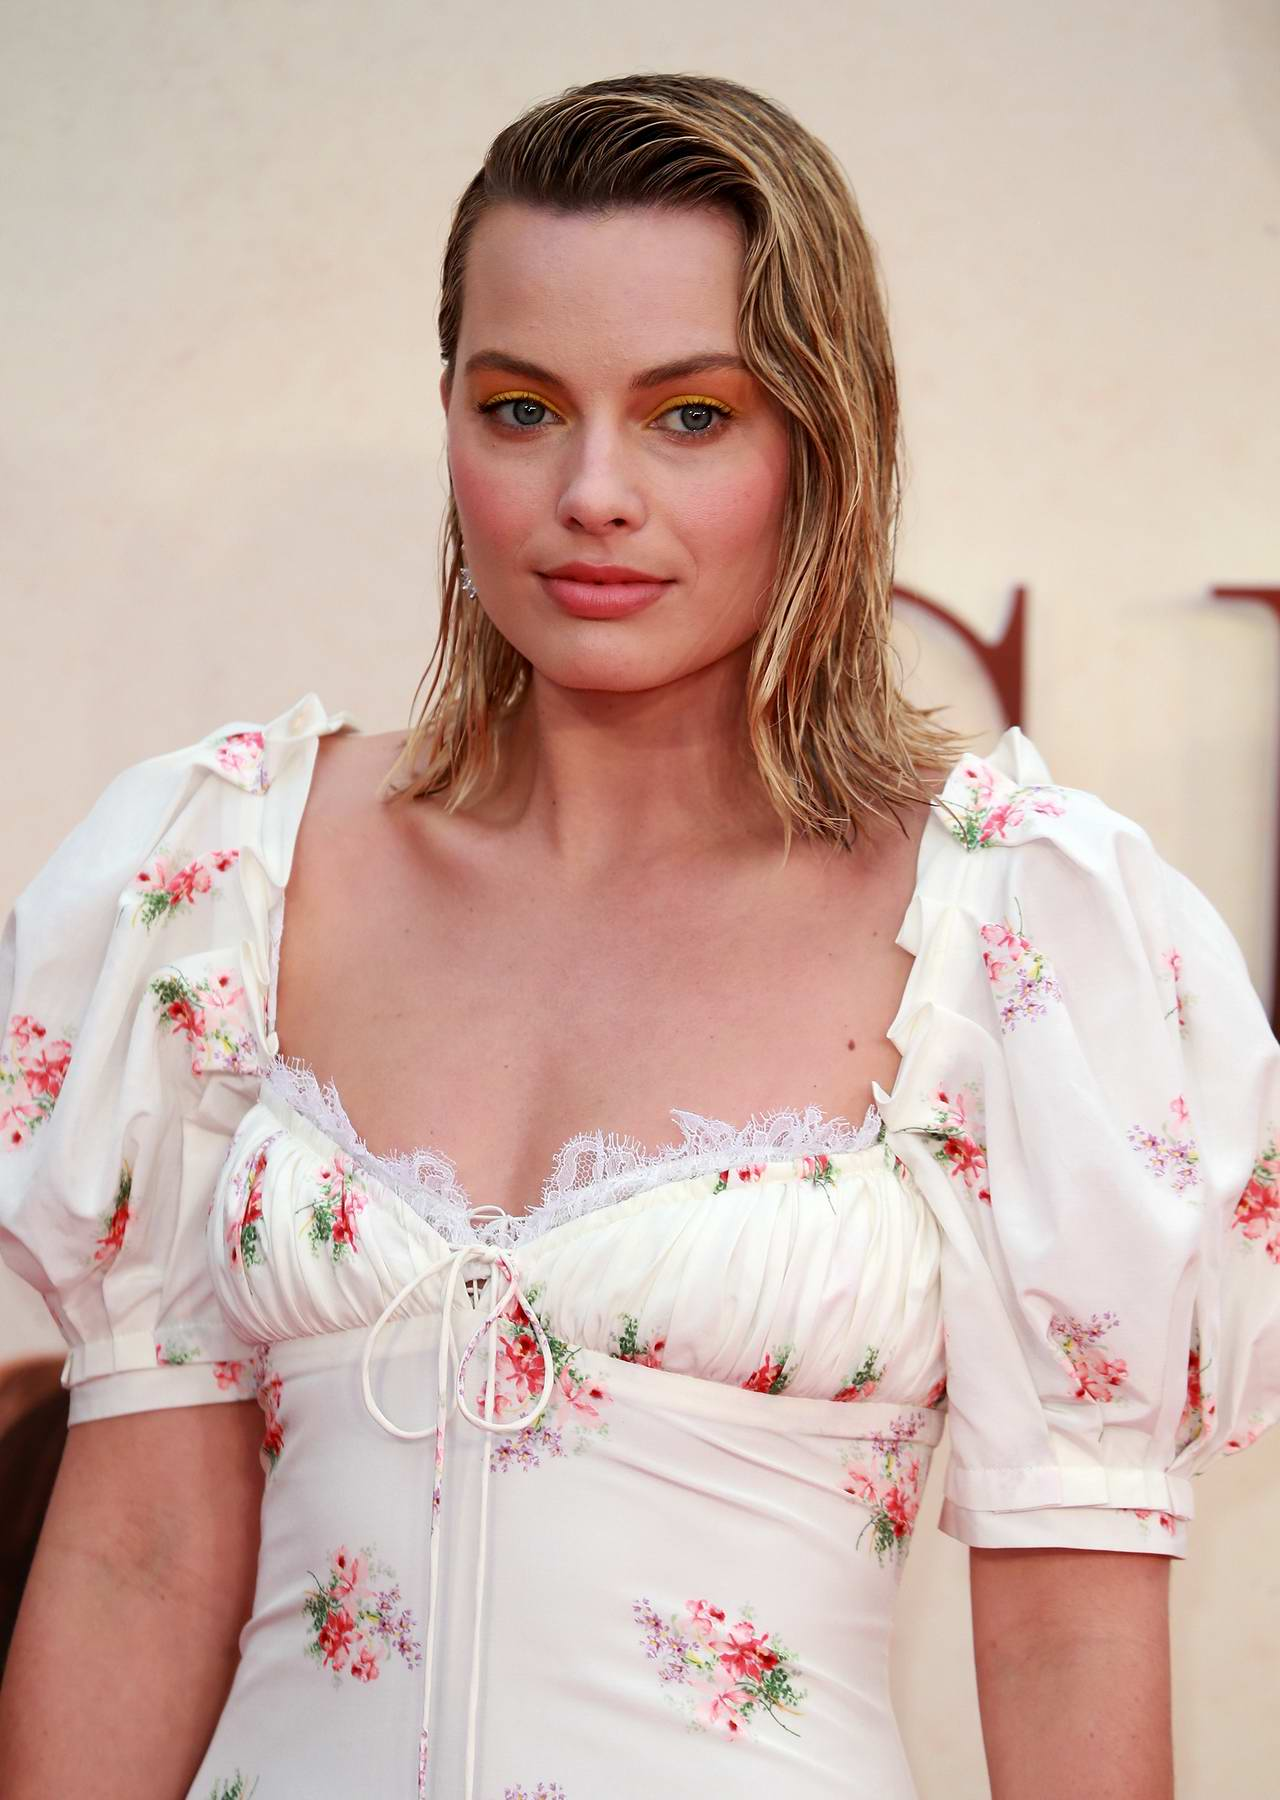 Margot Robbie attends 'Goodbye Christopher Robin' film premiere in London